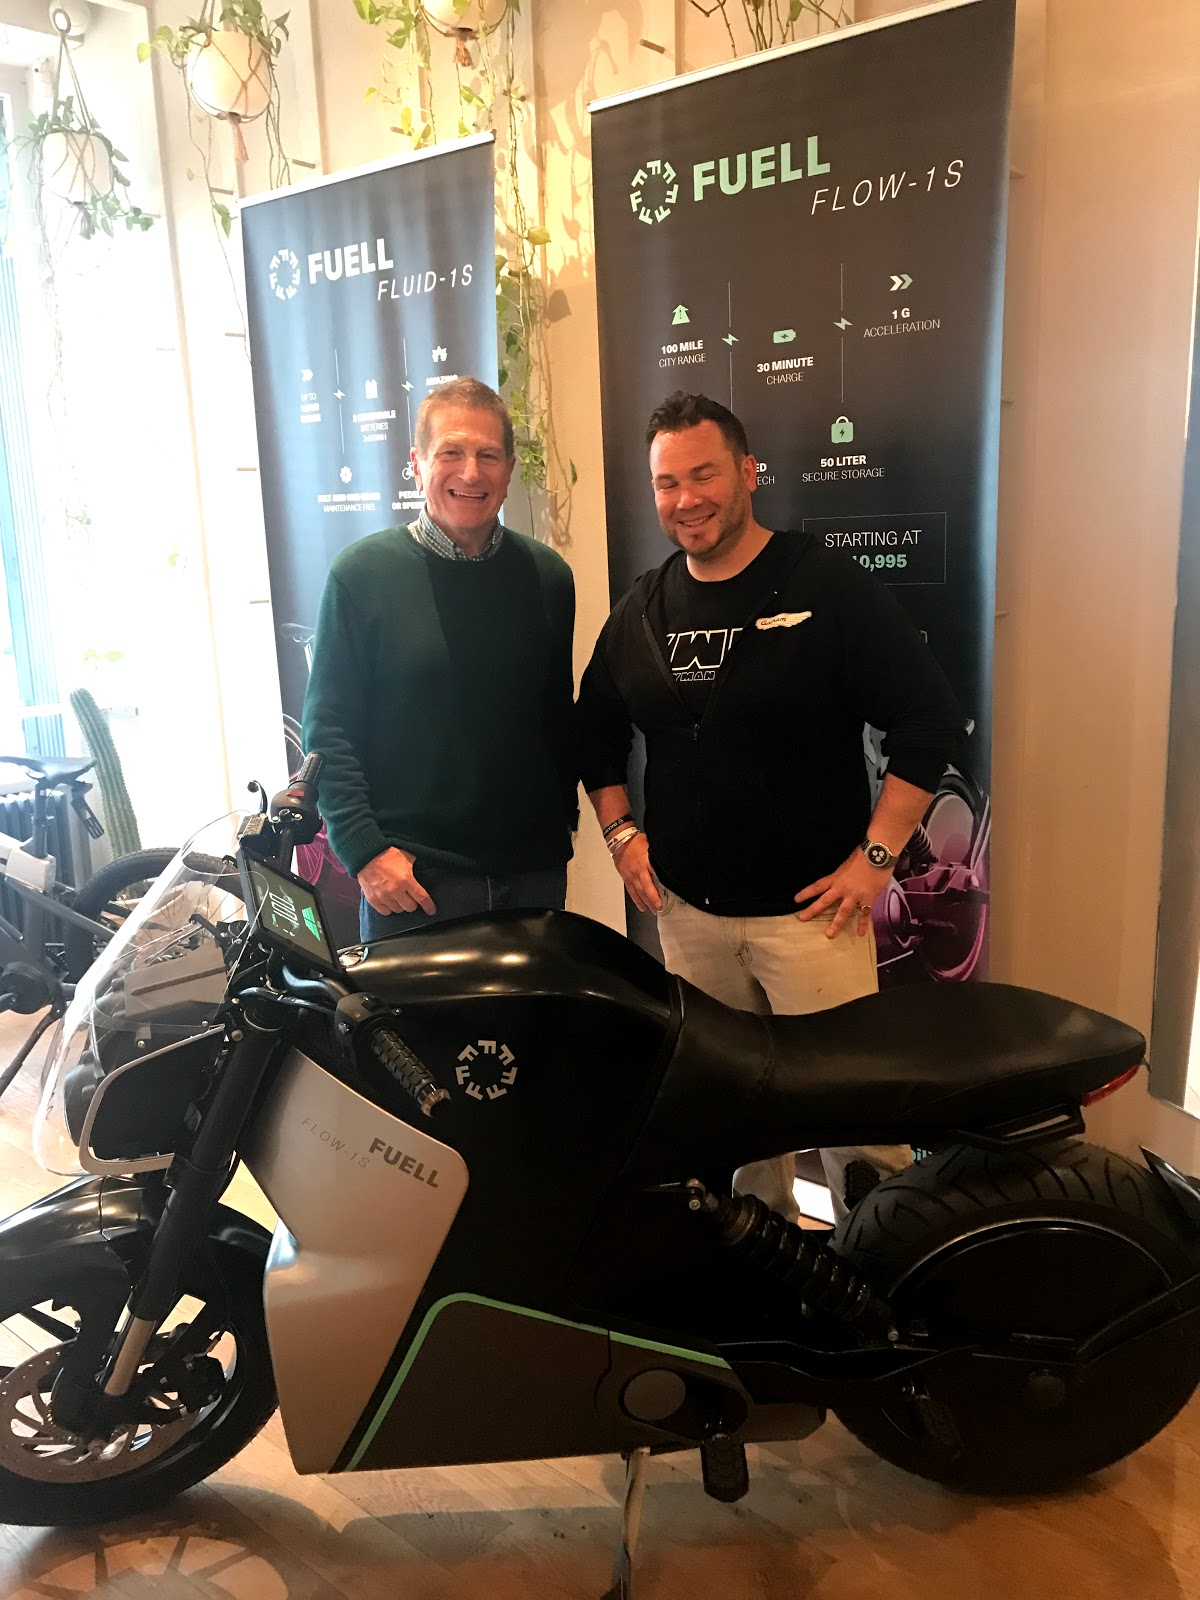 Erik Buell of FUELL and Tigh Loughhead, President of Gotham Ducati Desmo Owners Club in New York City